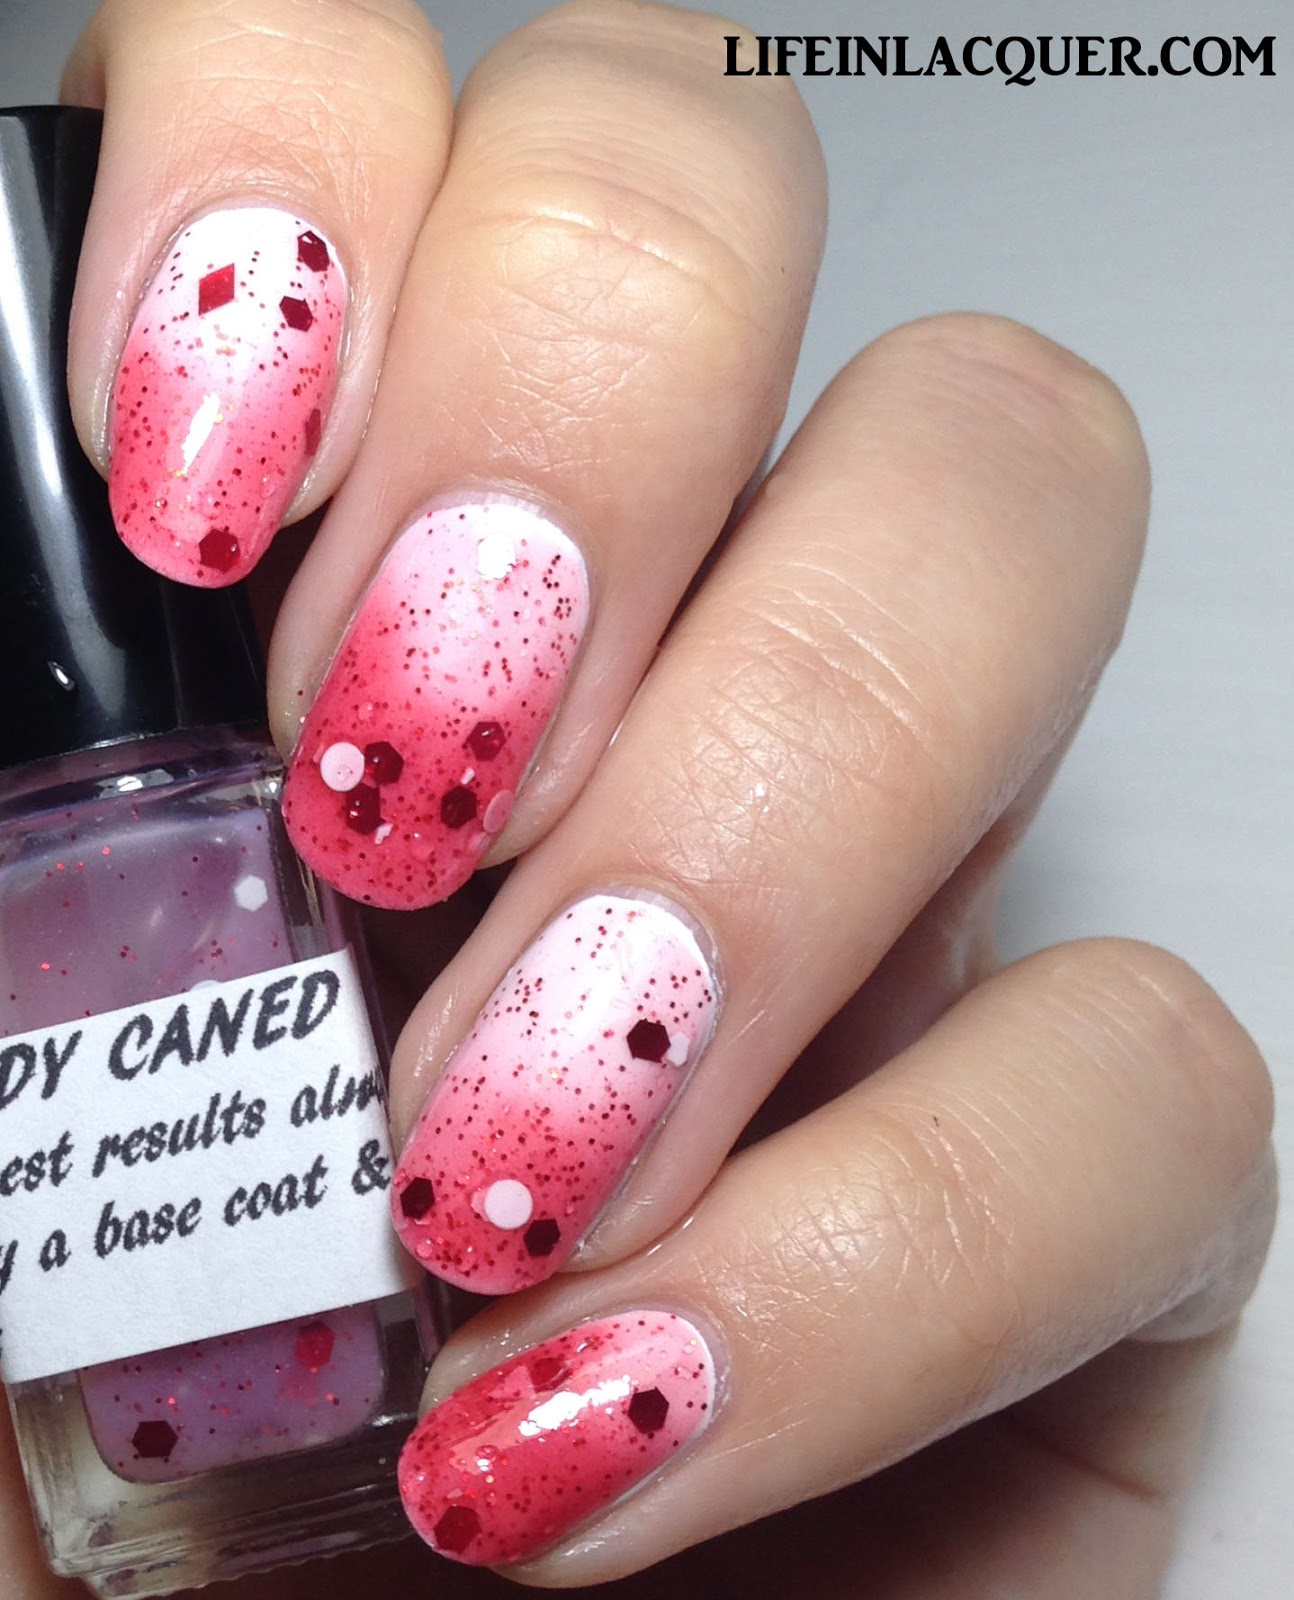 laquerdaisical Candy Caned swatch and review indie polish uk thermal